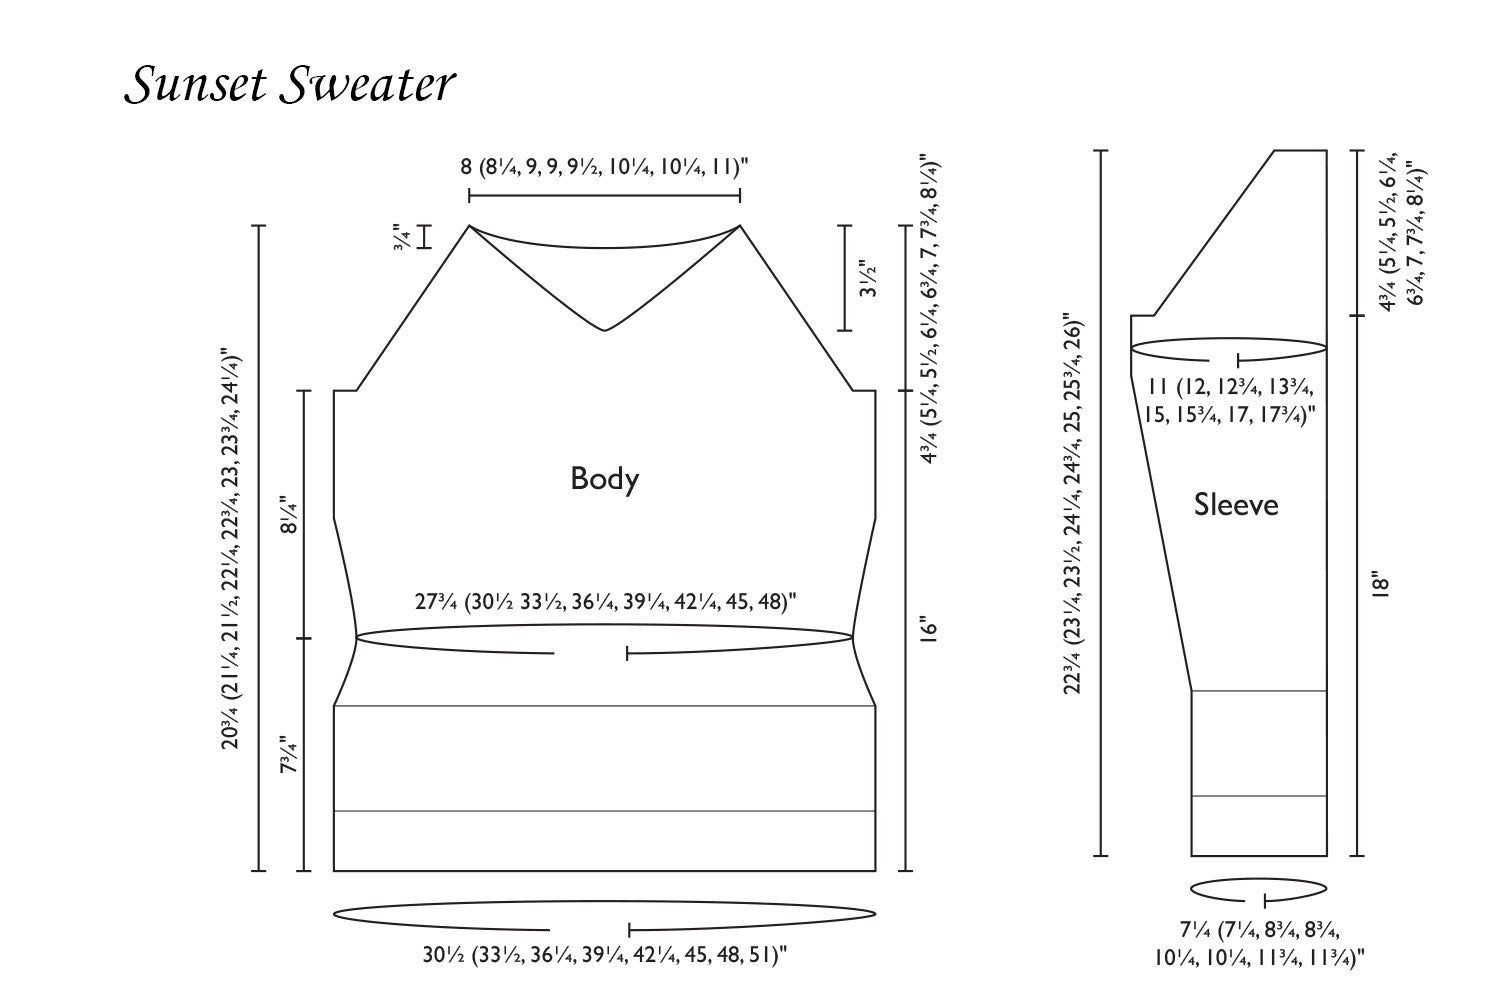 Detailed schematic line drawing with dimensions for Sunset Sweater